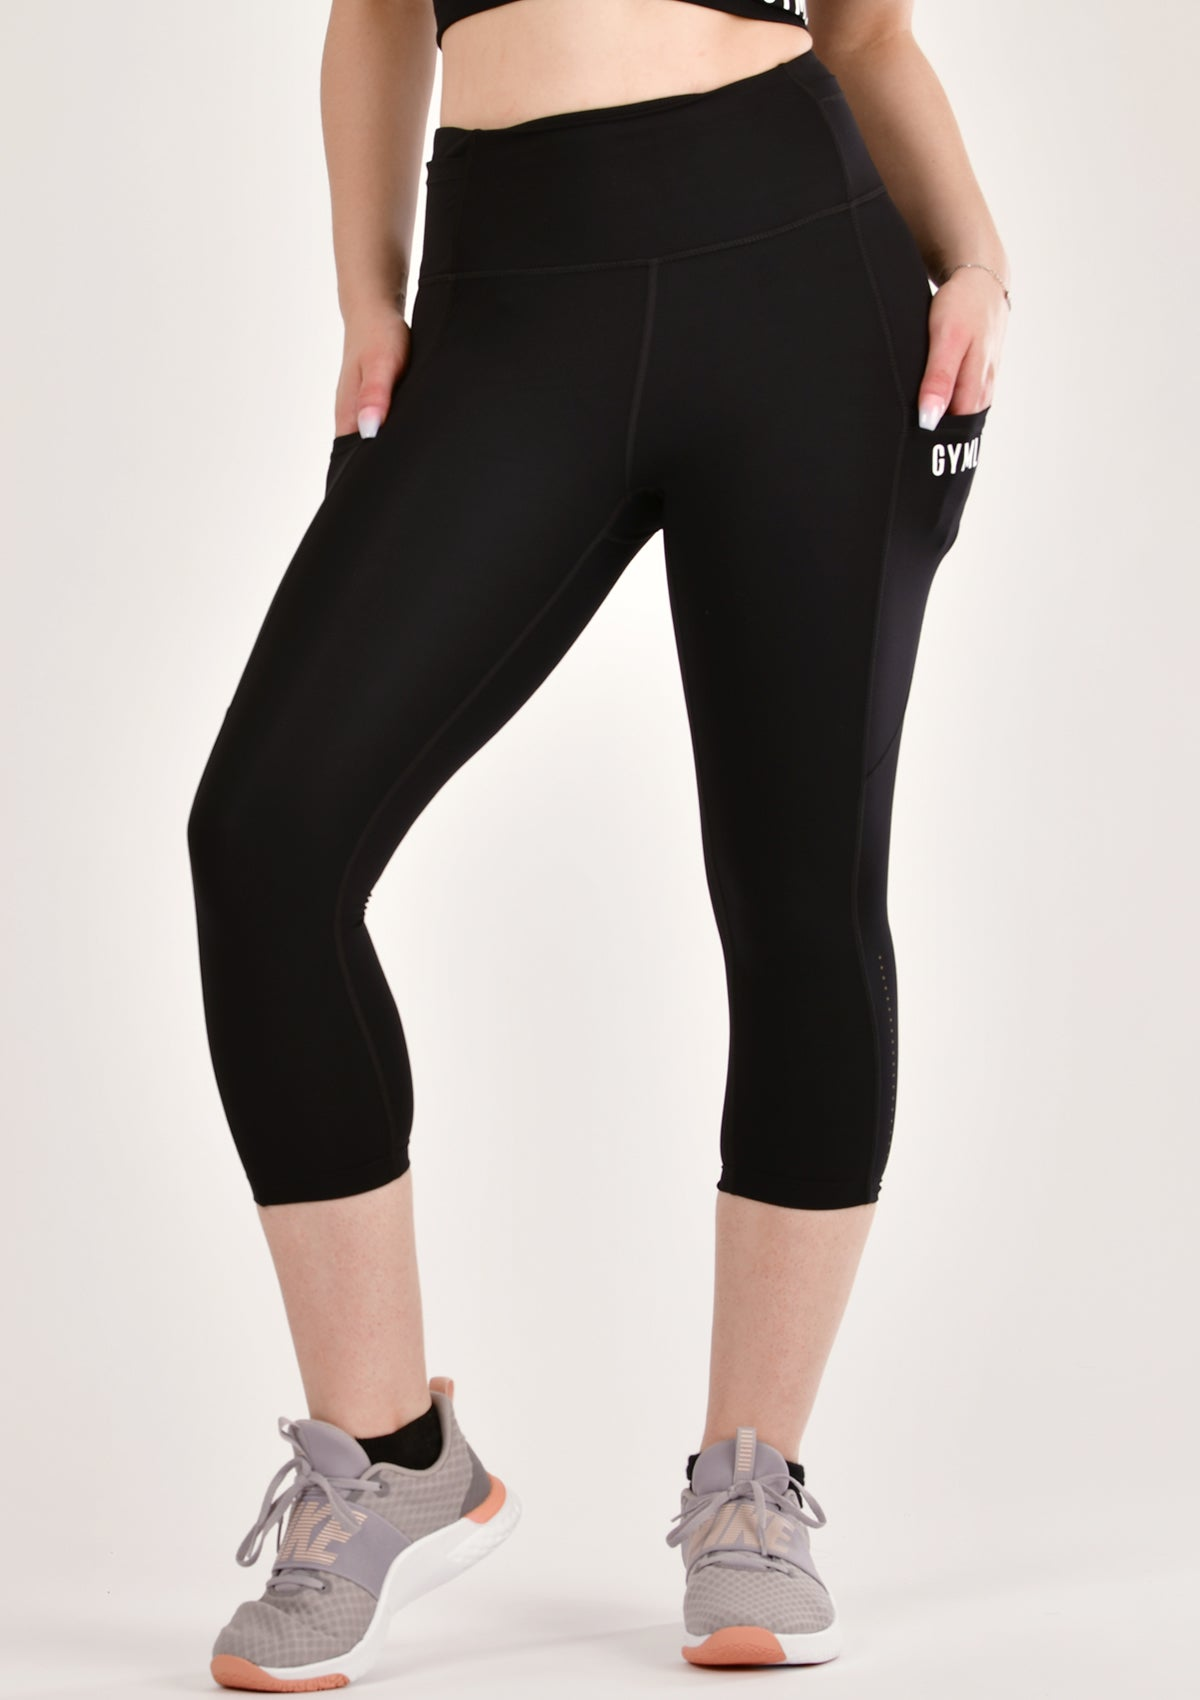 Alure Black Cropped Leggings